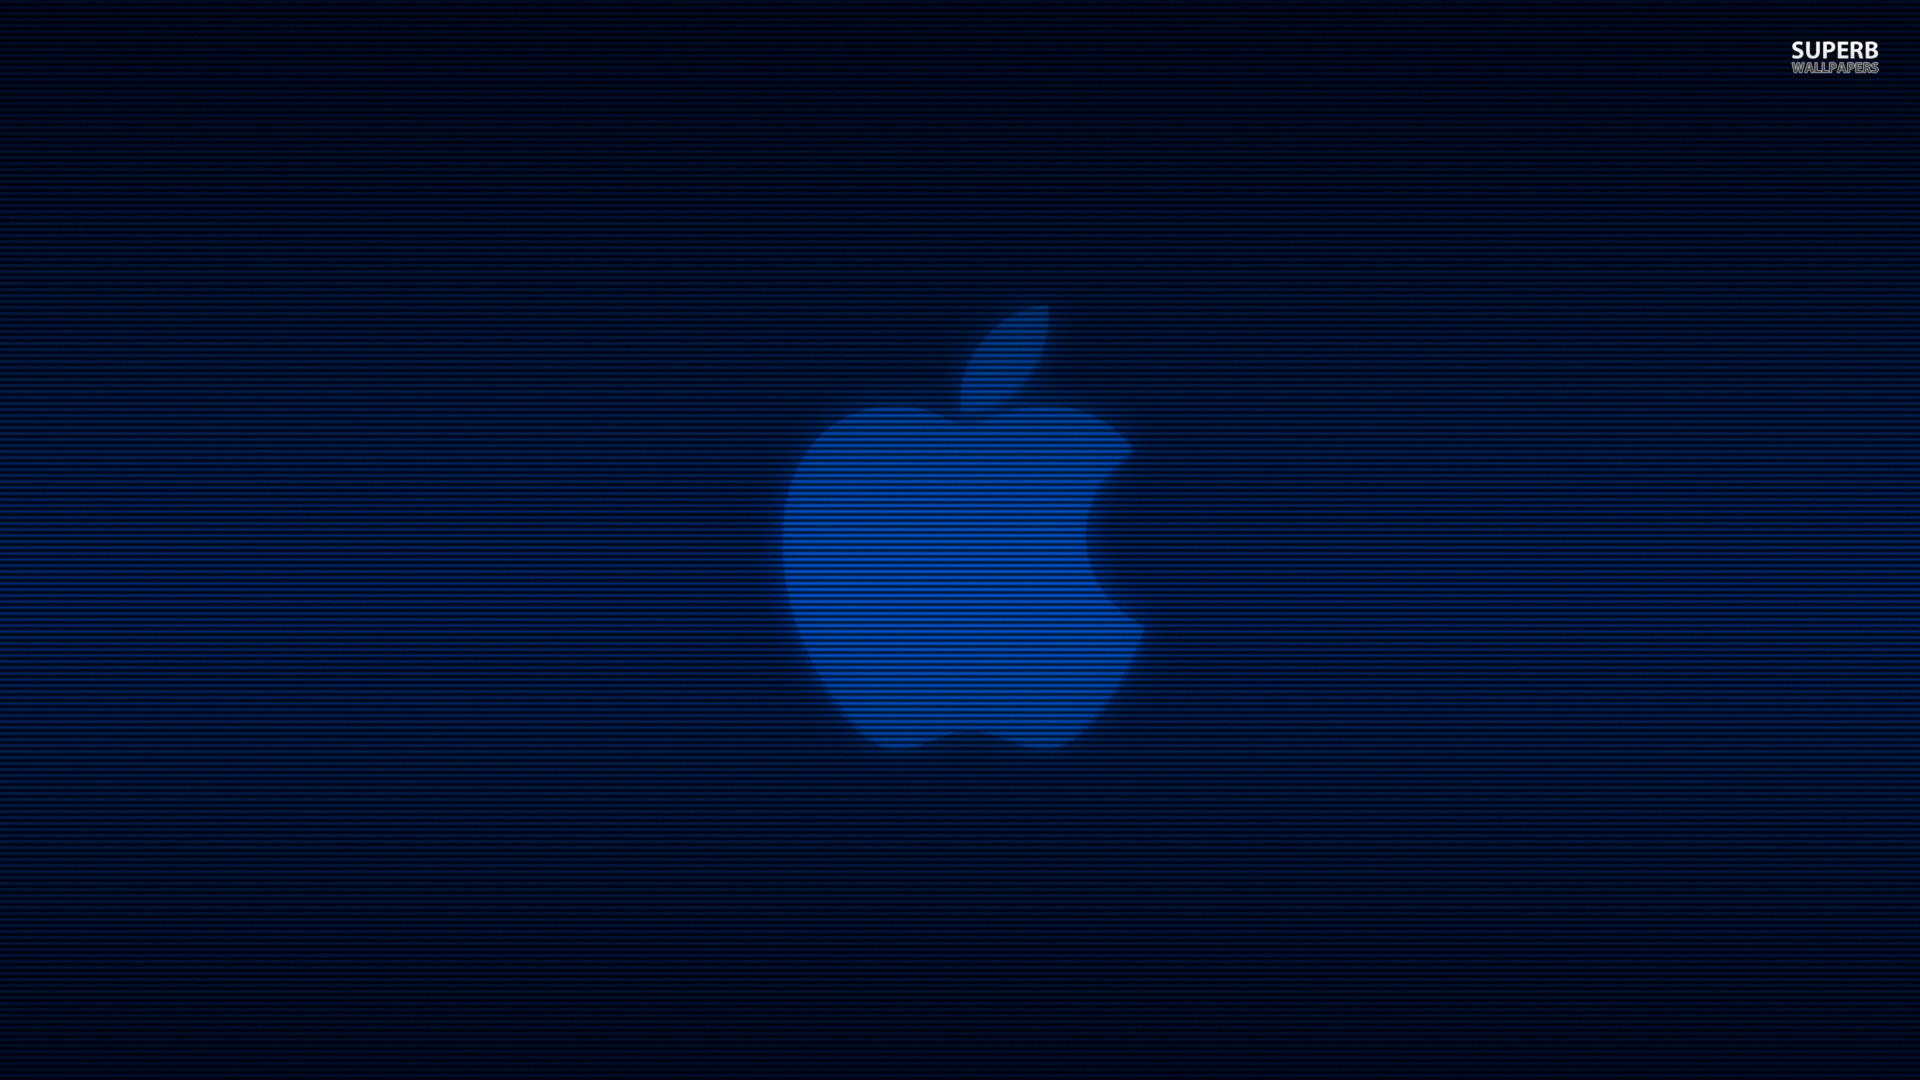 Blue Apple Wallpaper Wallpaper